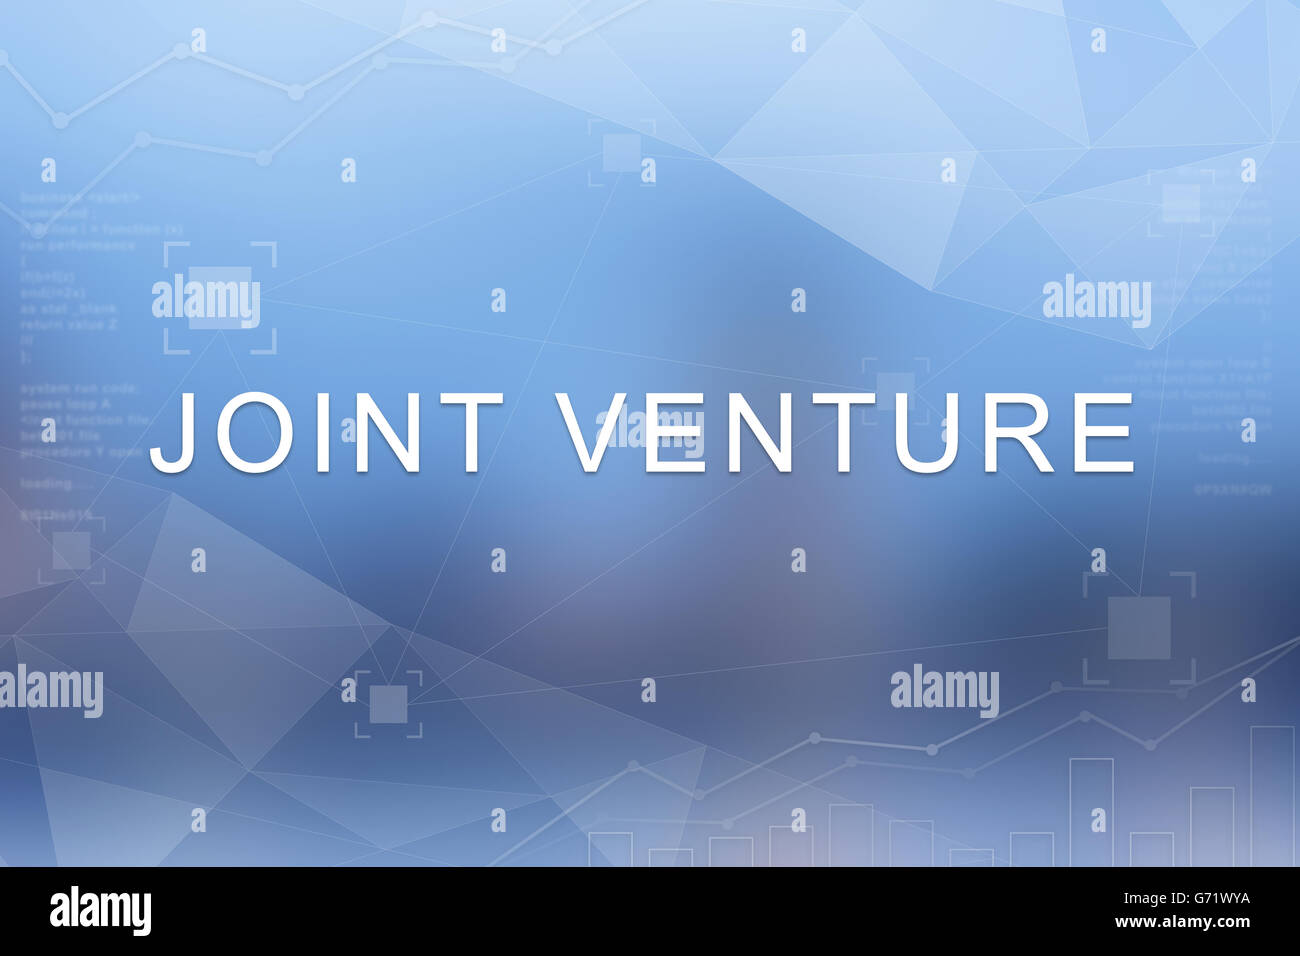 joint venture word on blue blurred and polygon background - Stock Image